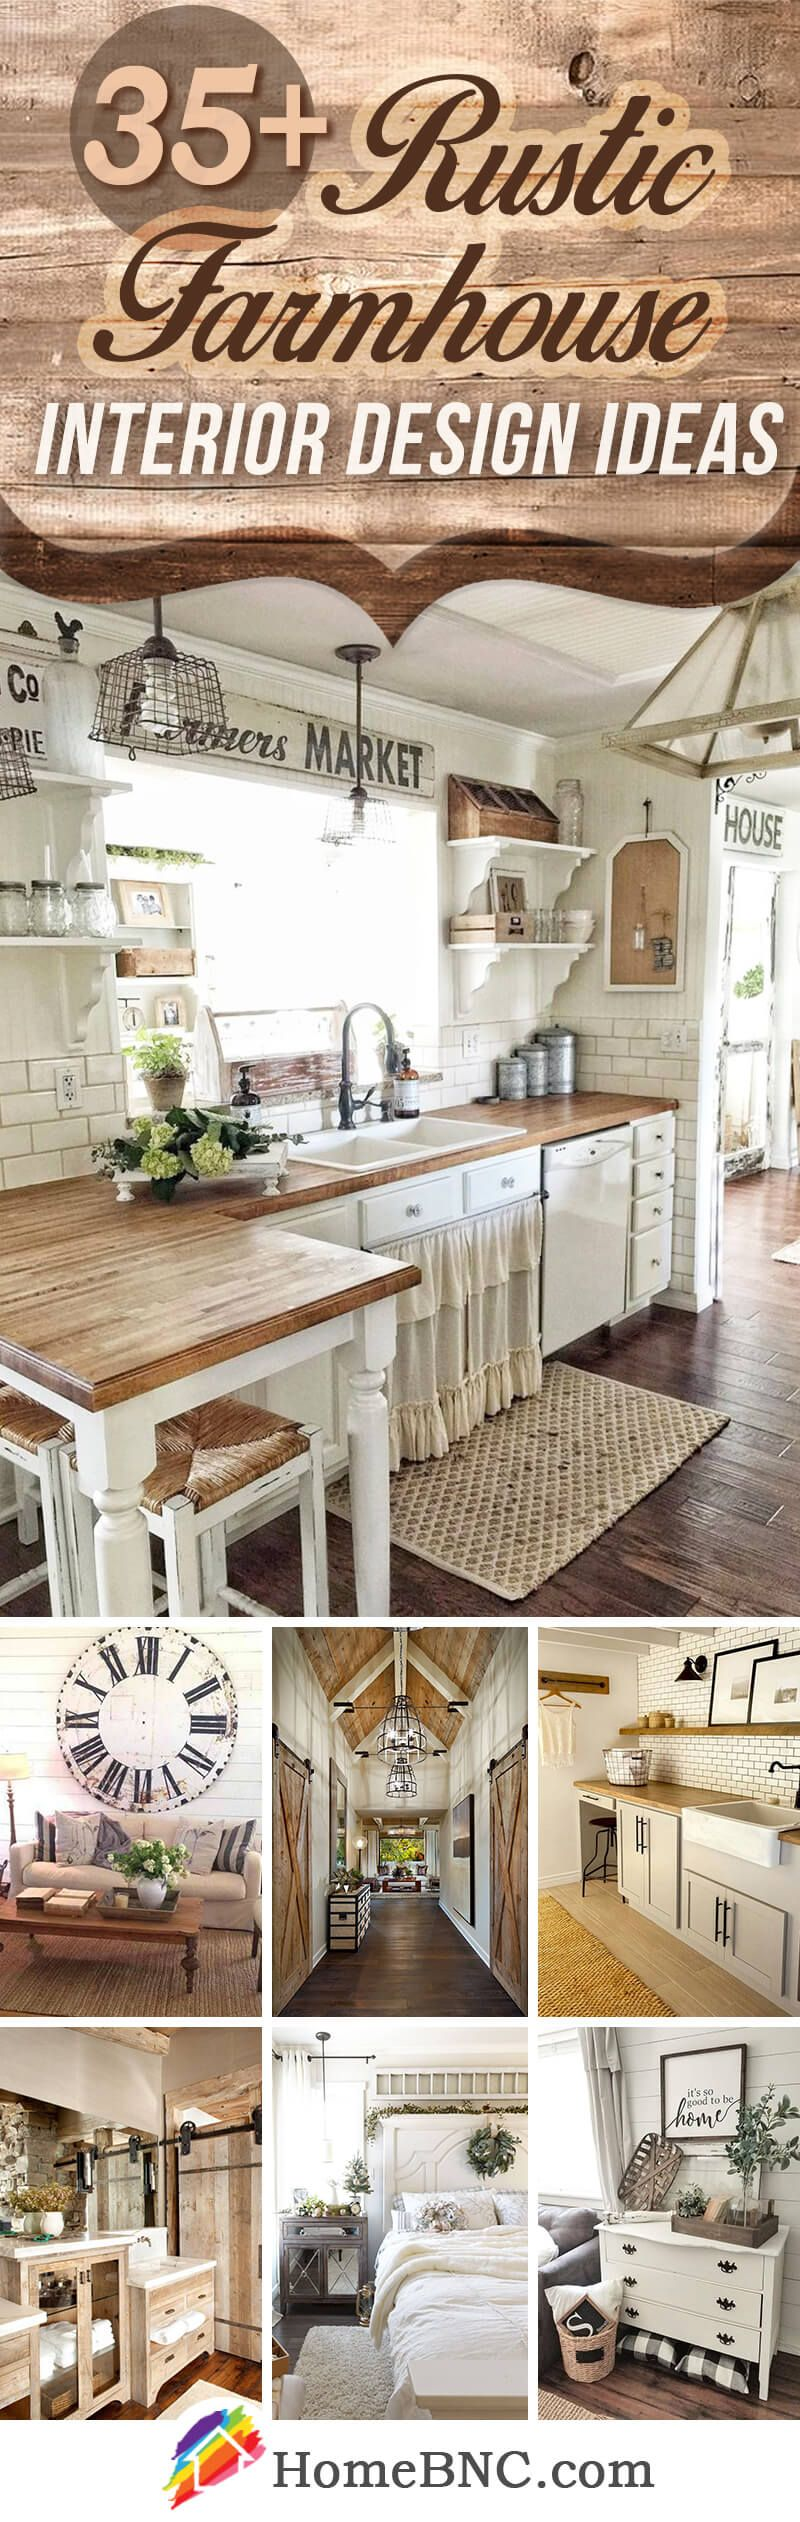 35+ Rustic Farmhouse Interior Design Ideas that will Inspire Your ...